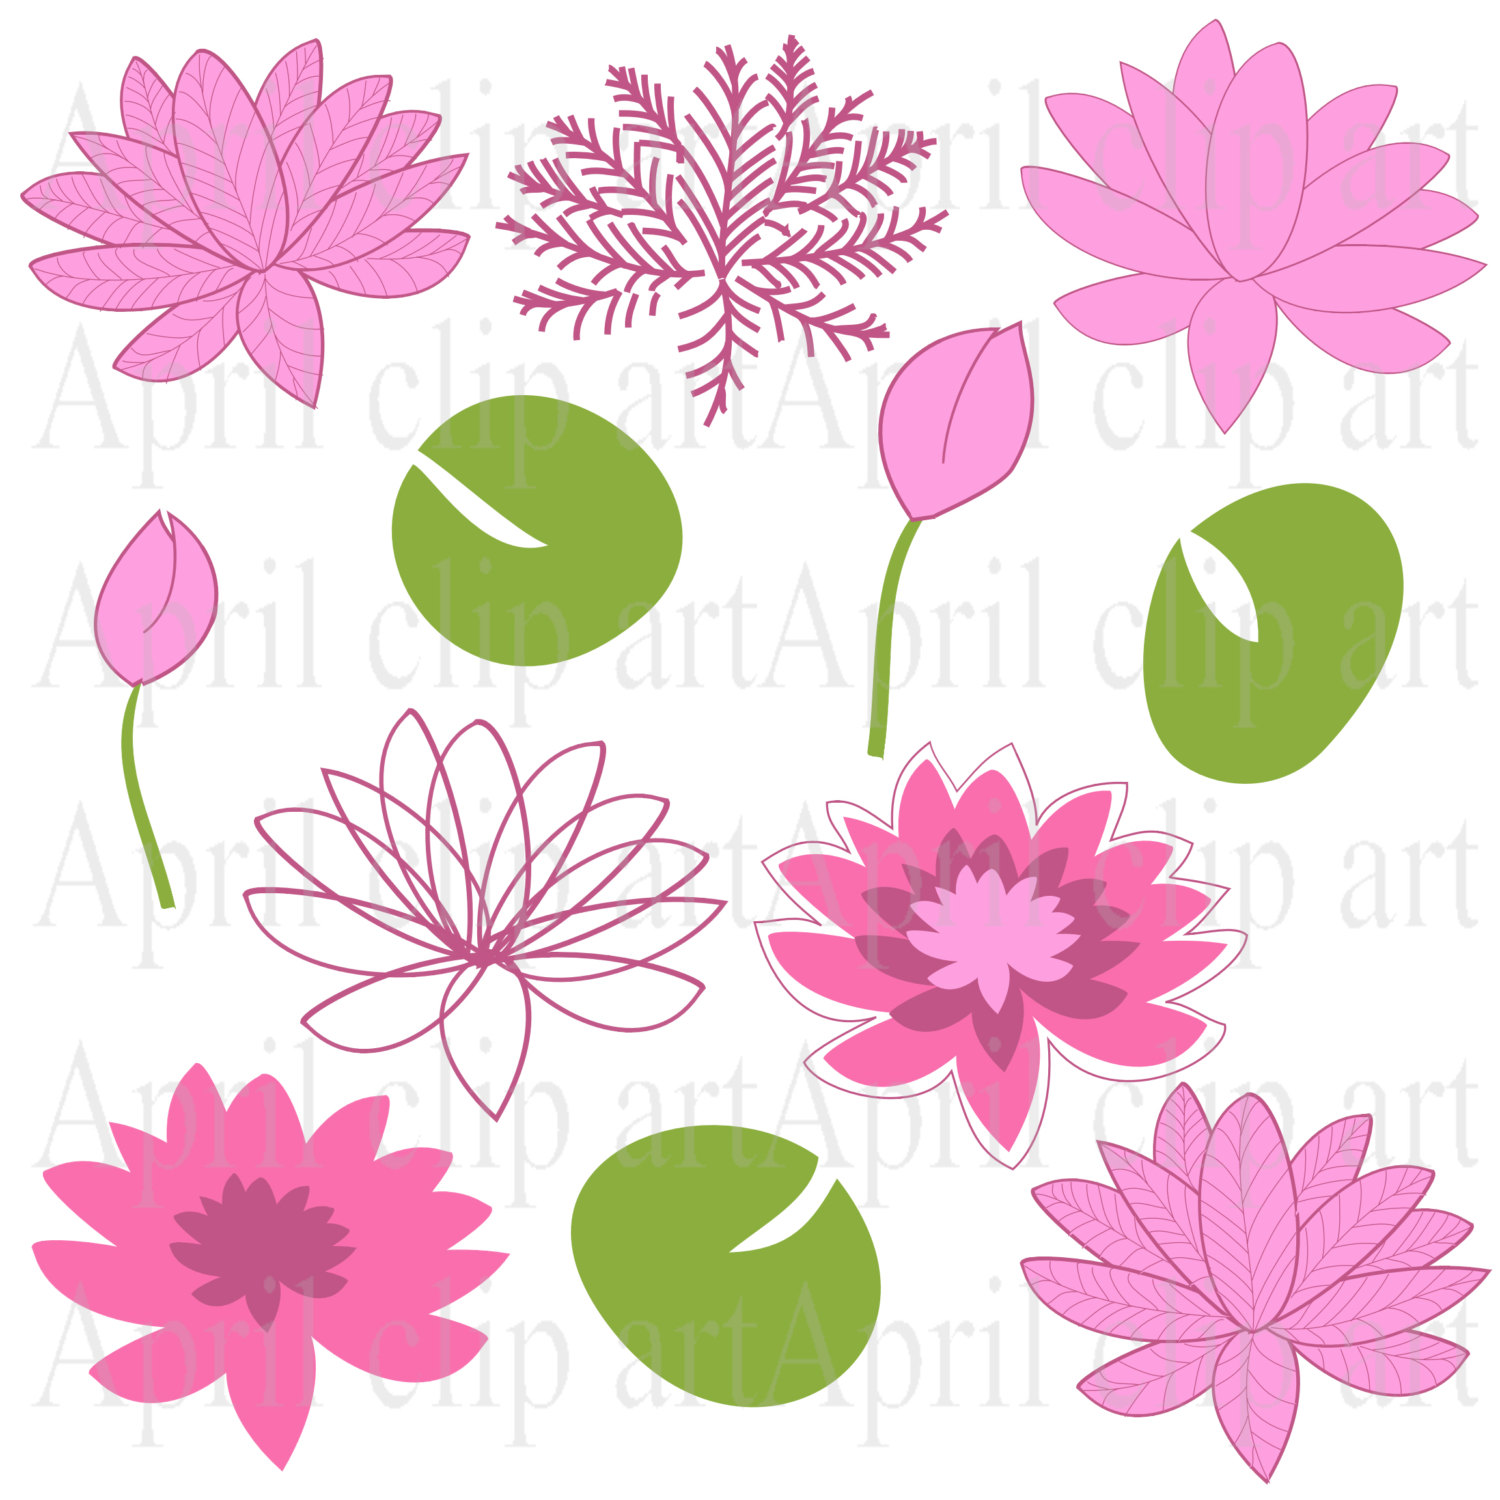 Clipart Flowers, Water Lilies Clip Art in Pink, 12 Flower graphics.